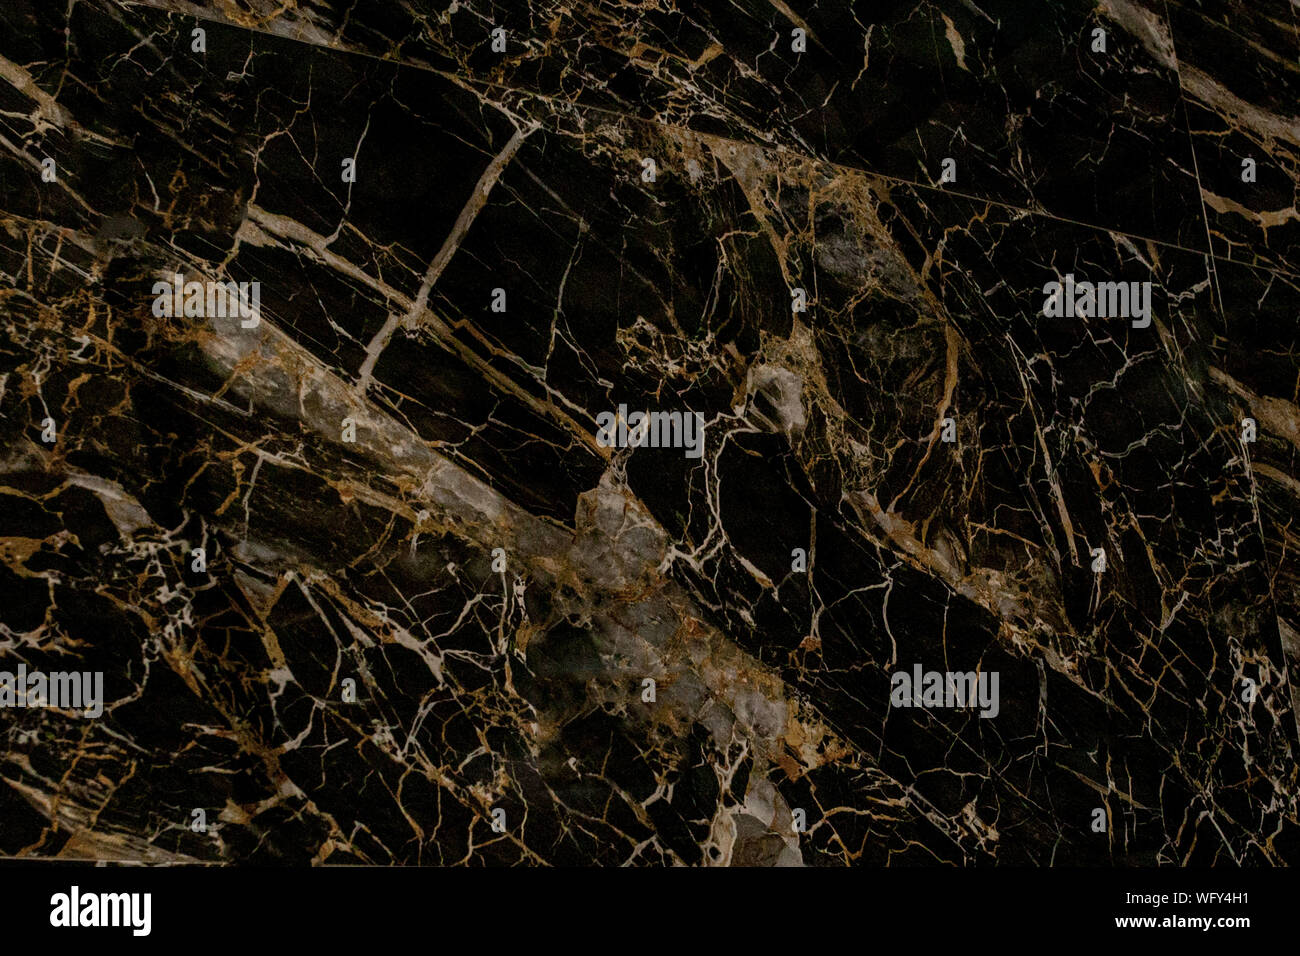 Gold And White Patterned Natural Of Dark Gray Marble Texture Background For Product Design Black Marble Natural Pattern For Background Stock Photo Alamy